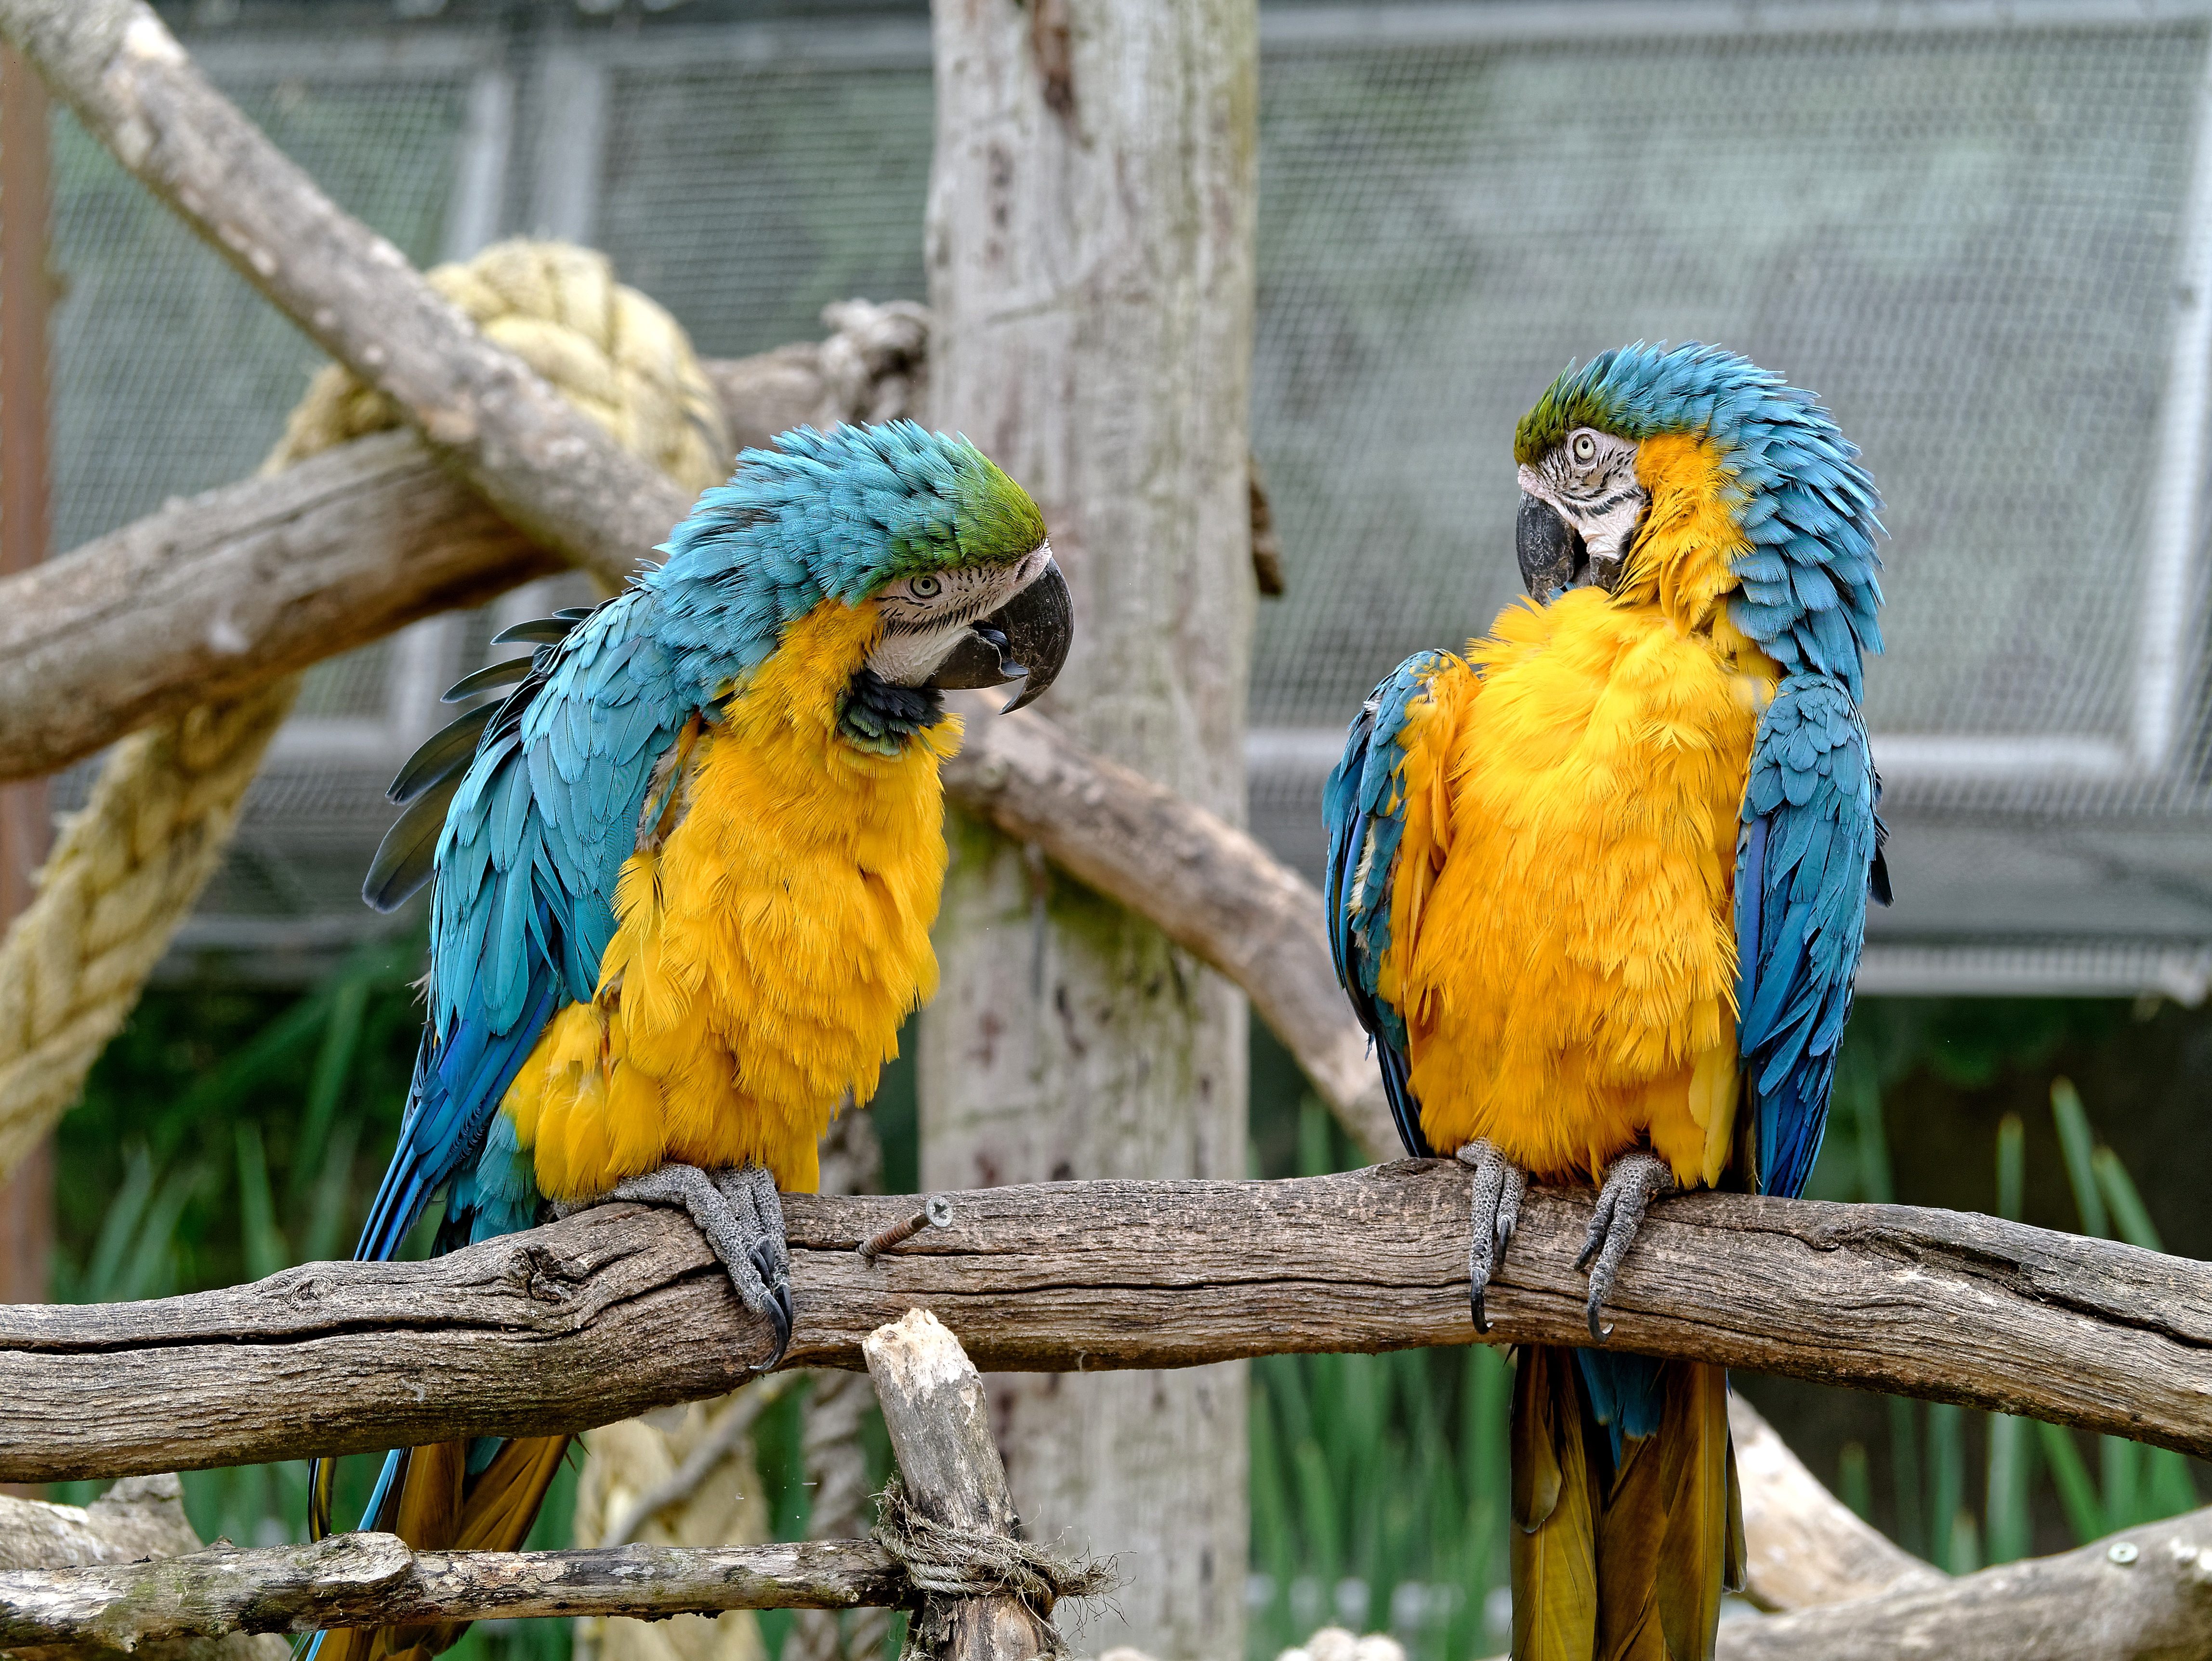 124453 download wallpaper Birds, Animals, Parrots, Couple, Pair, Zoo screensavers and pictures for free